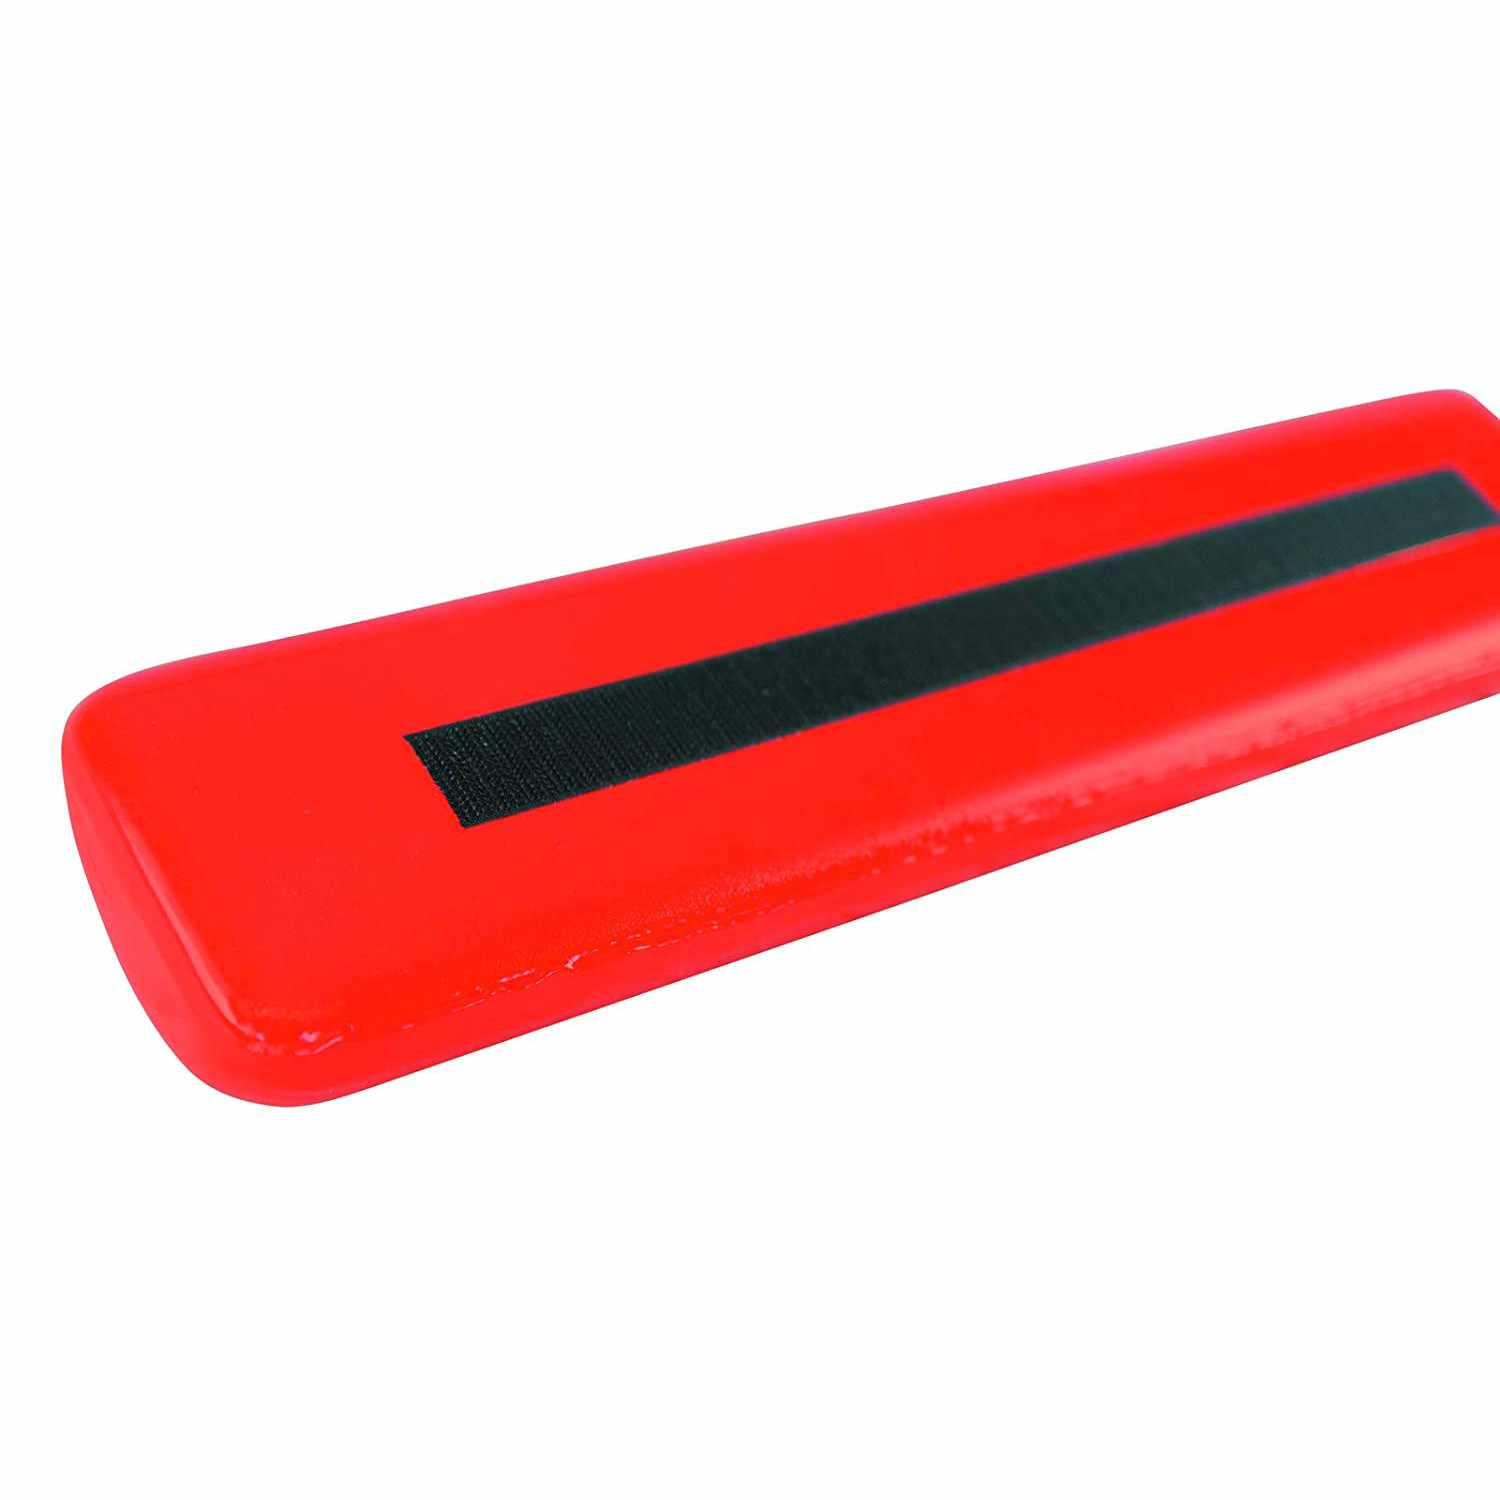 Tumble Forms Wedge For Tadpole Positioner - 4772TW